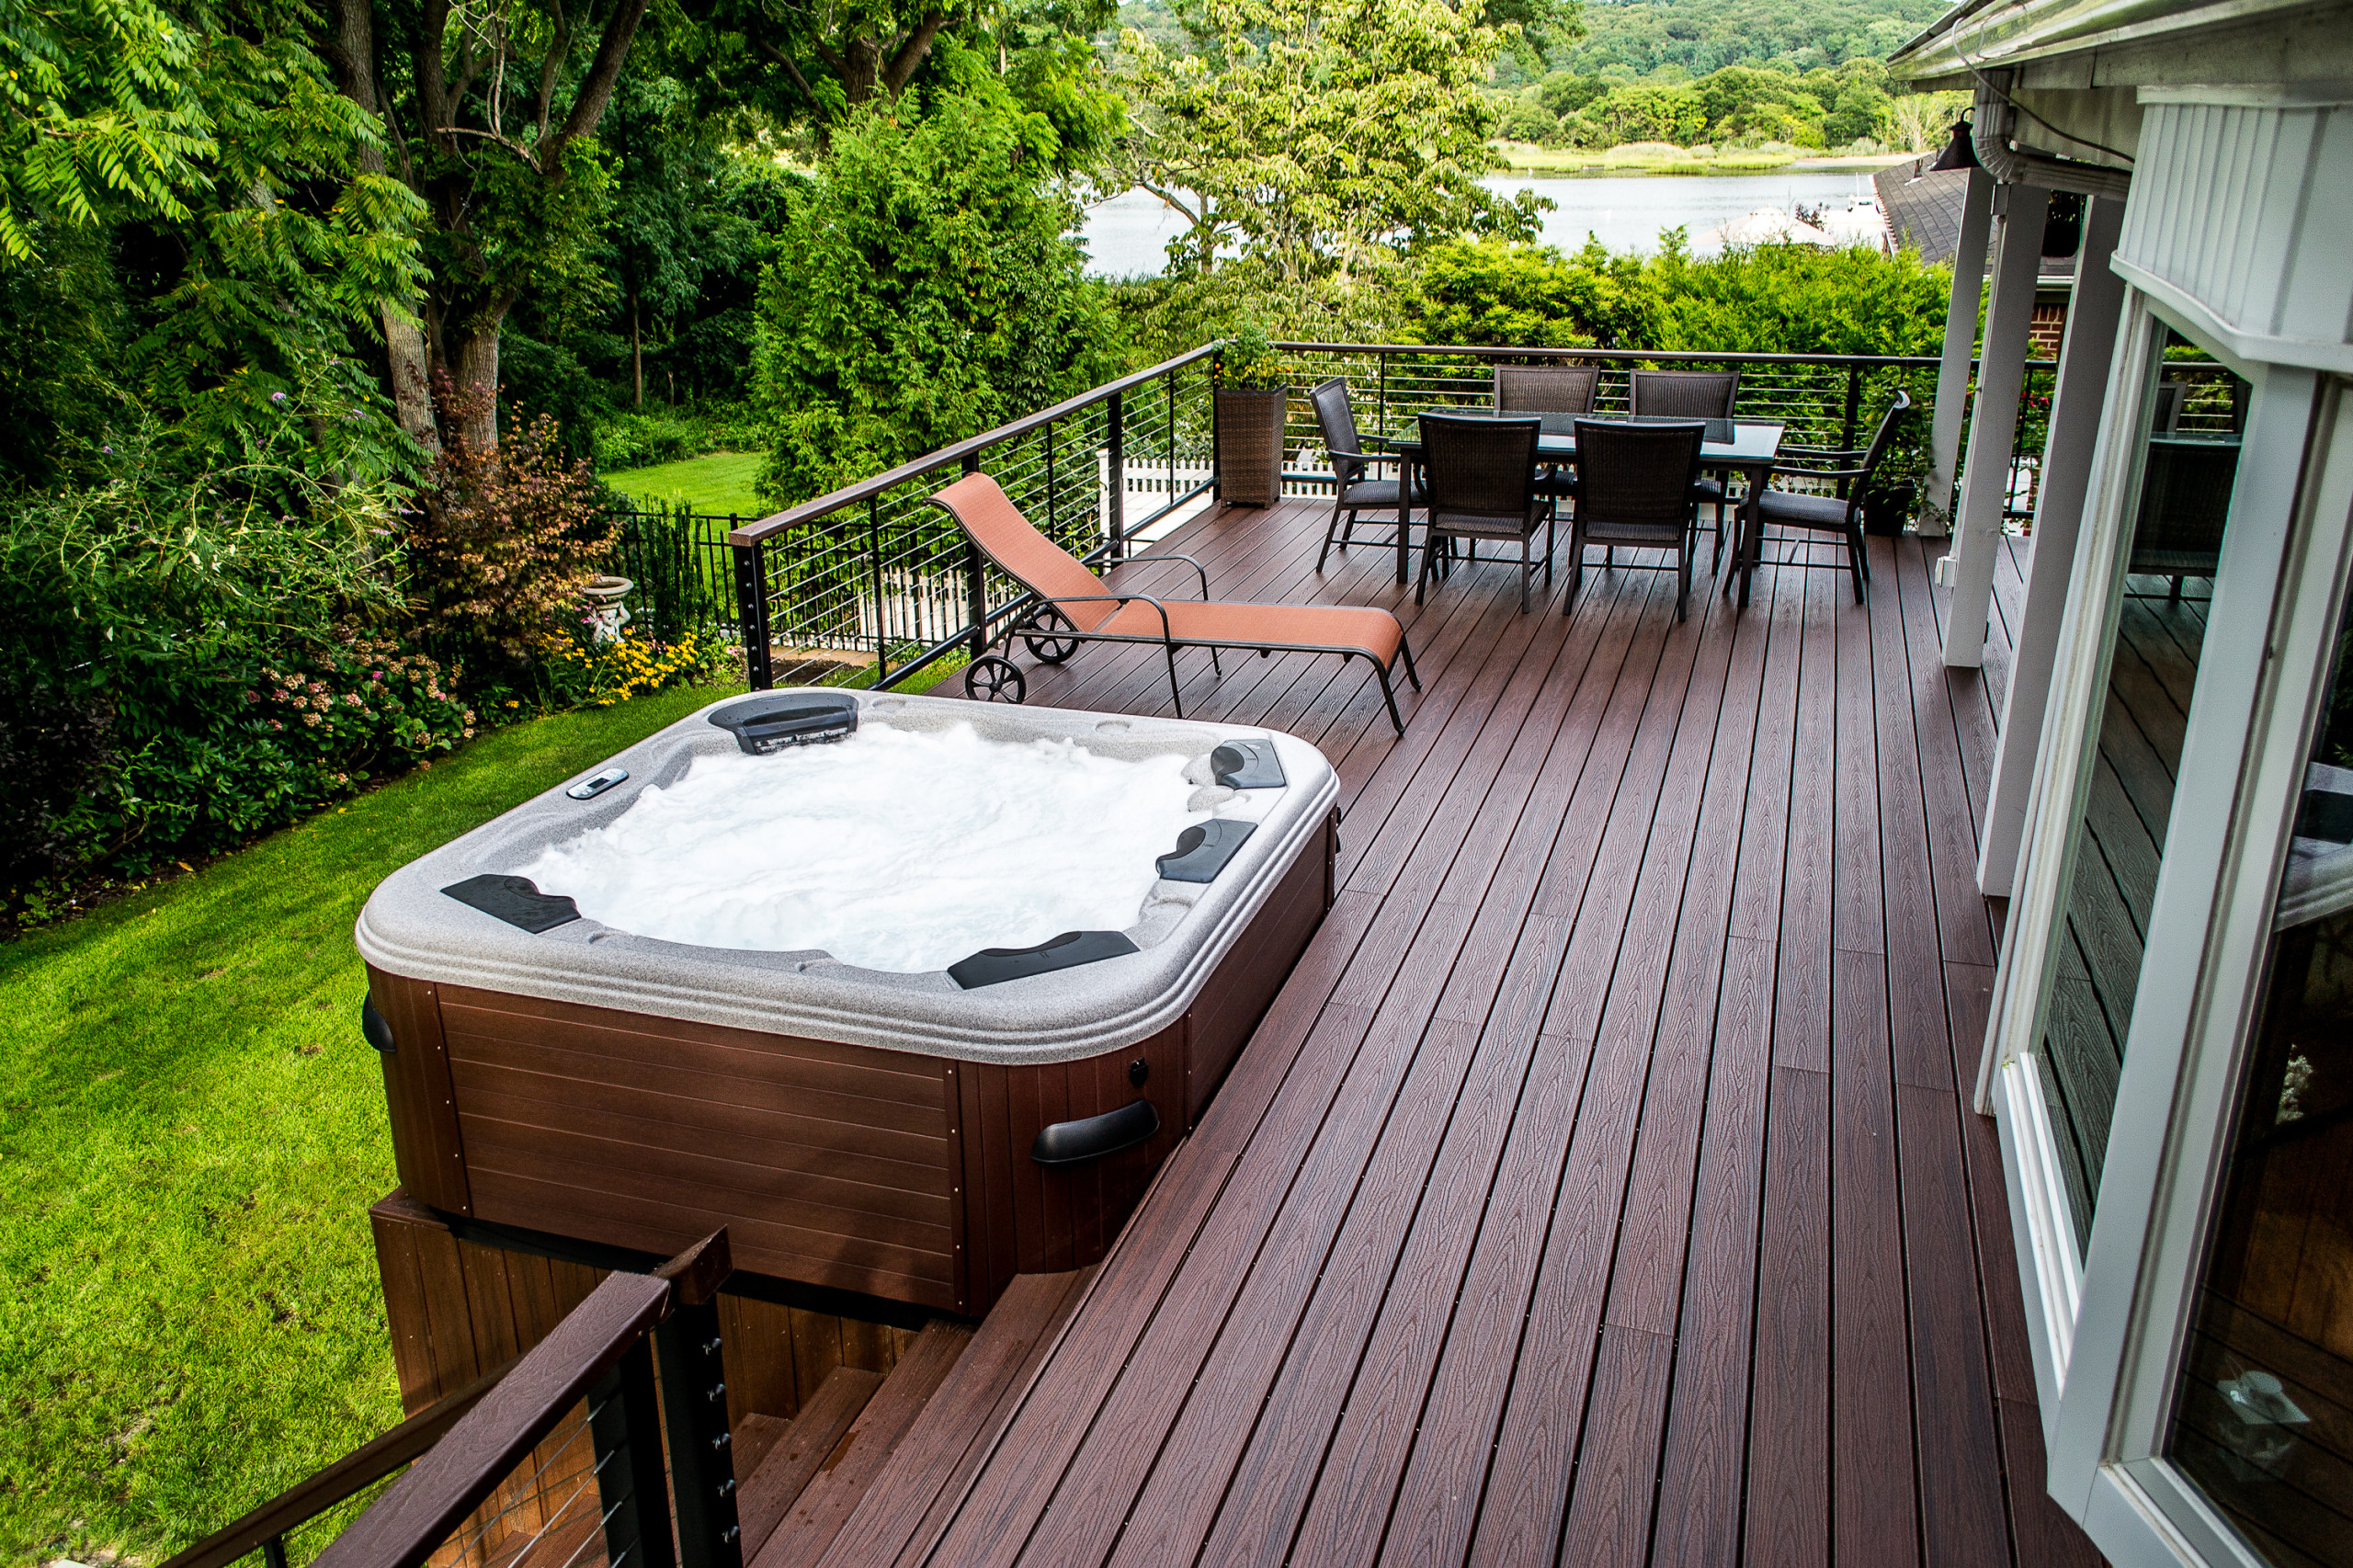 Bullfrog spa 20 Hot Tub with Trex Decking and Cable rail ...